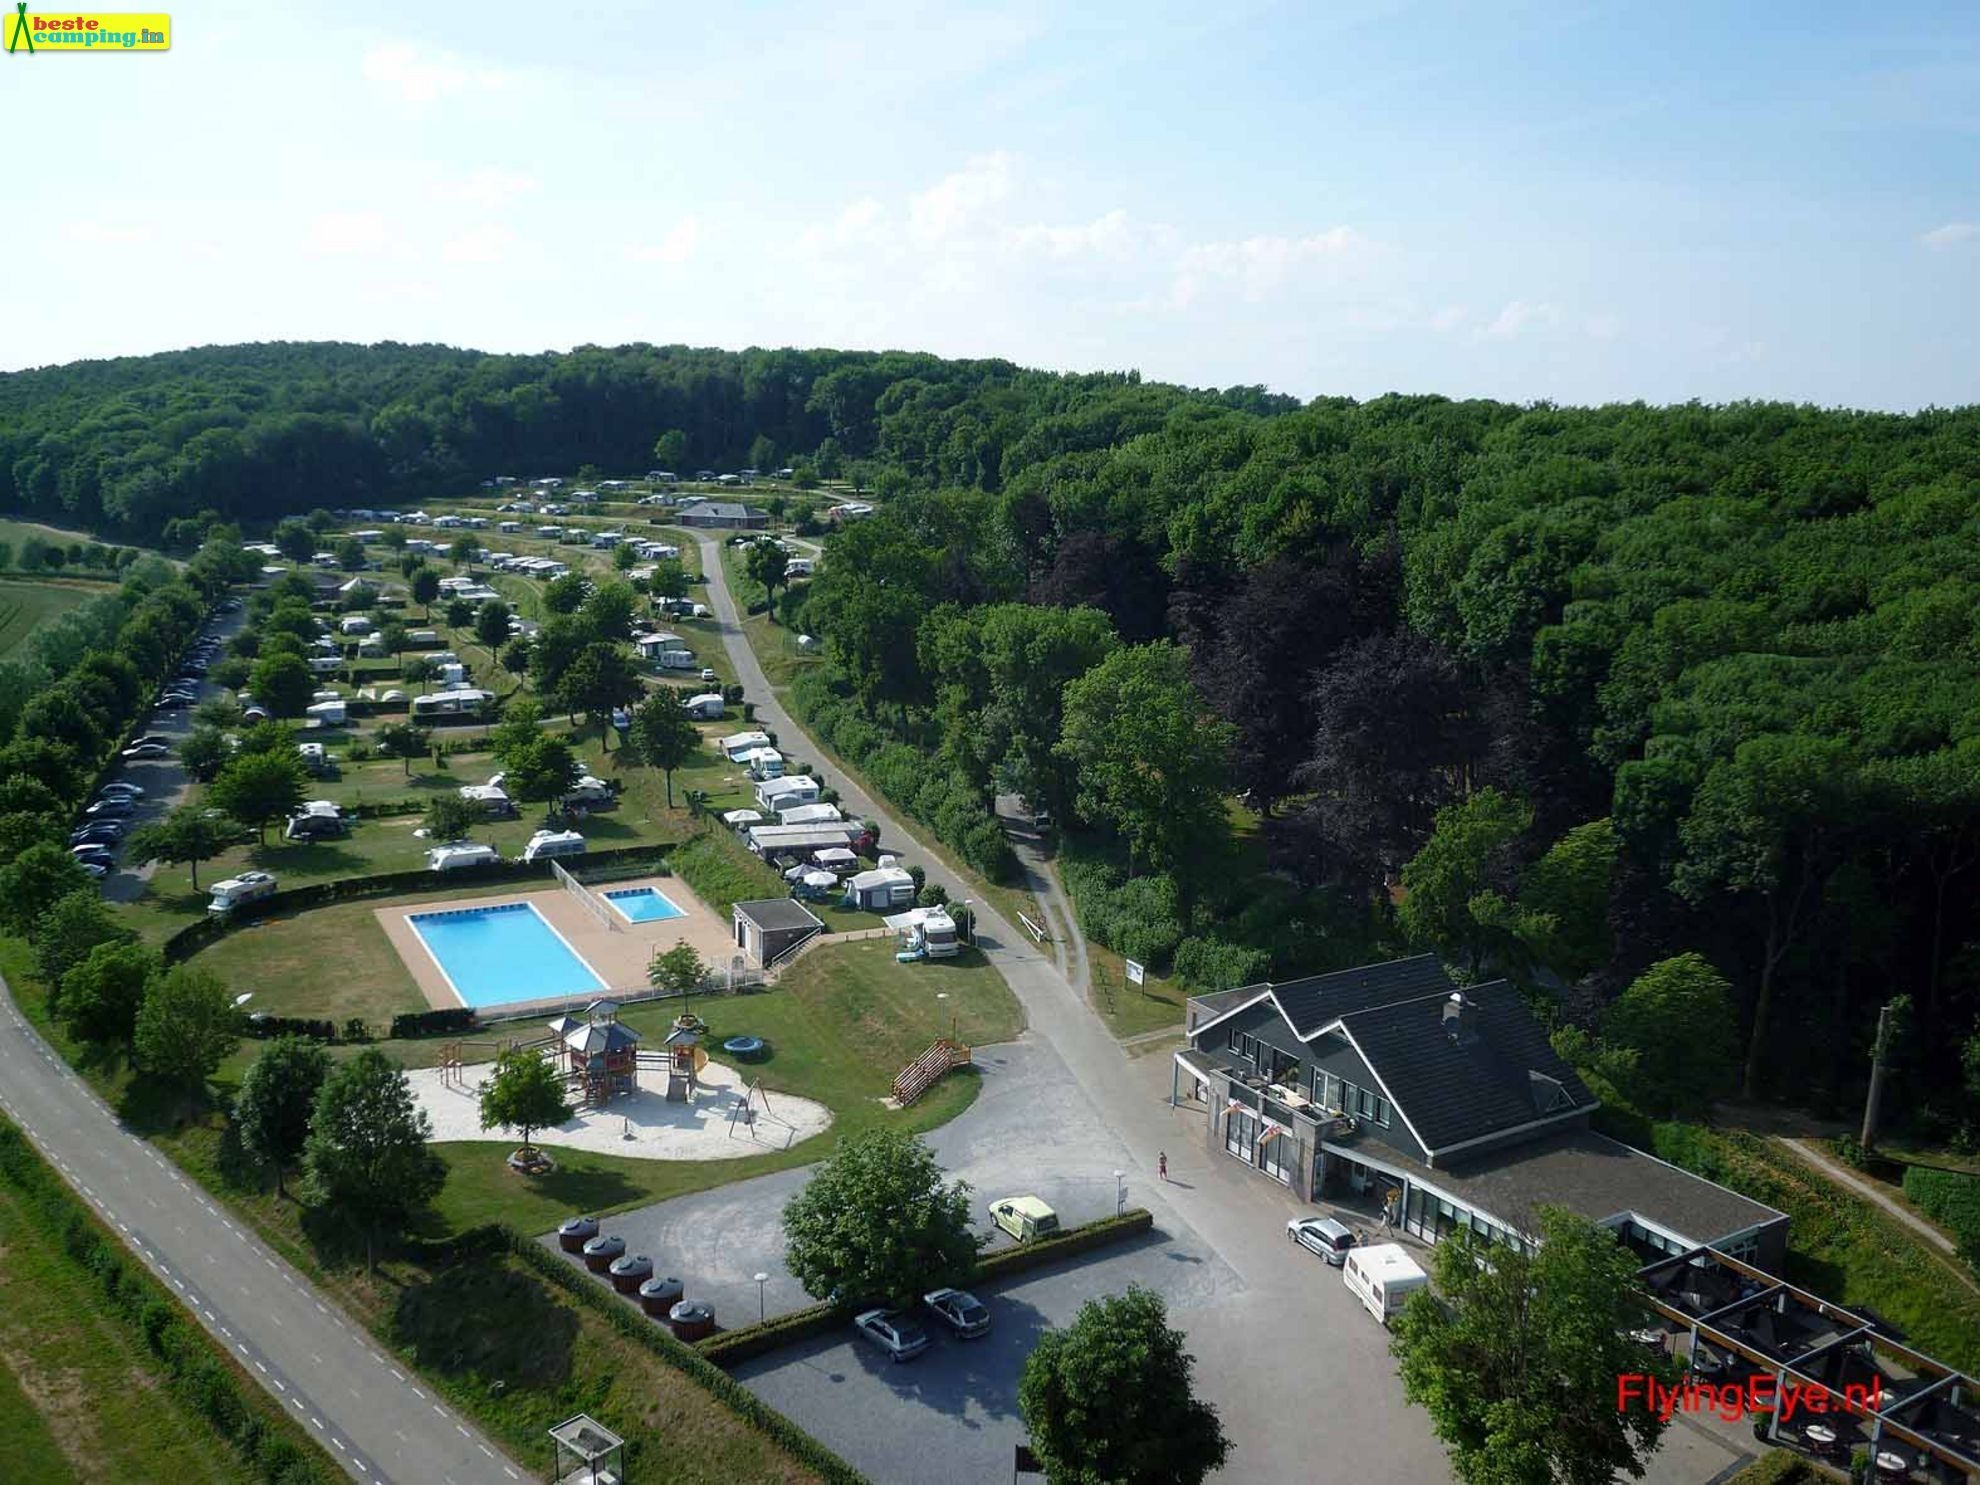 Gulpen Netherlands  City pictures : Foto's Camping Osebos★★★★ in Gulpen, Limburg, Nederland